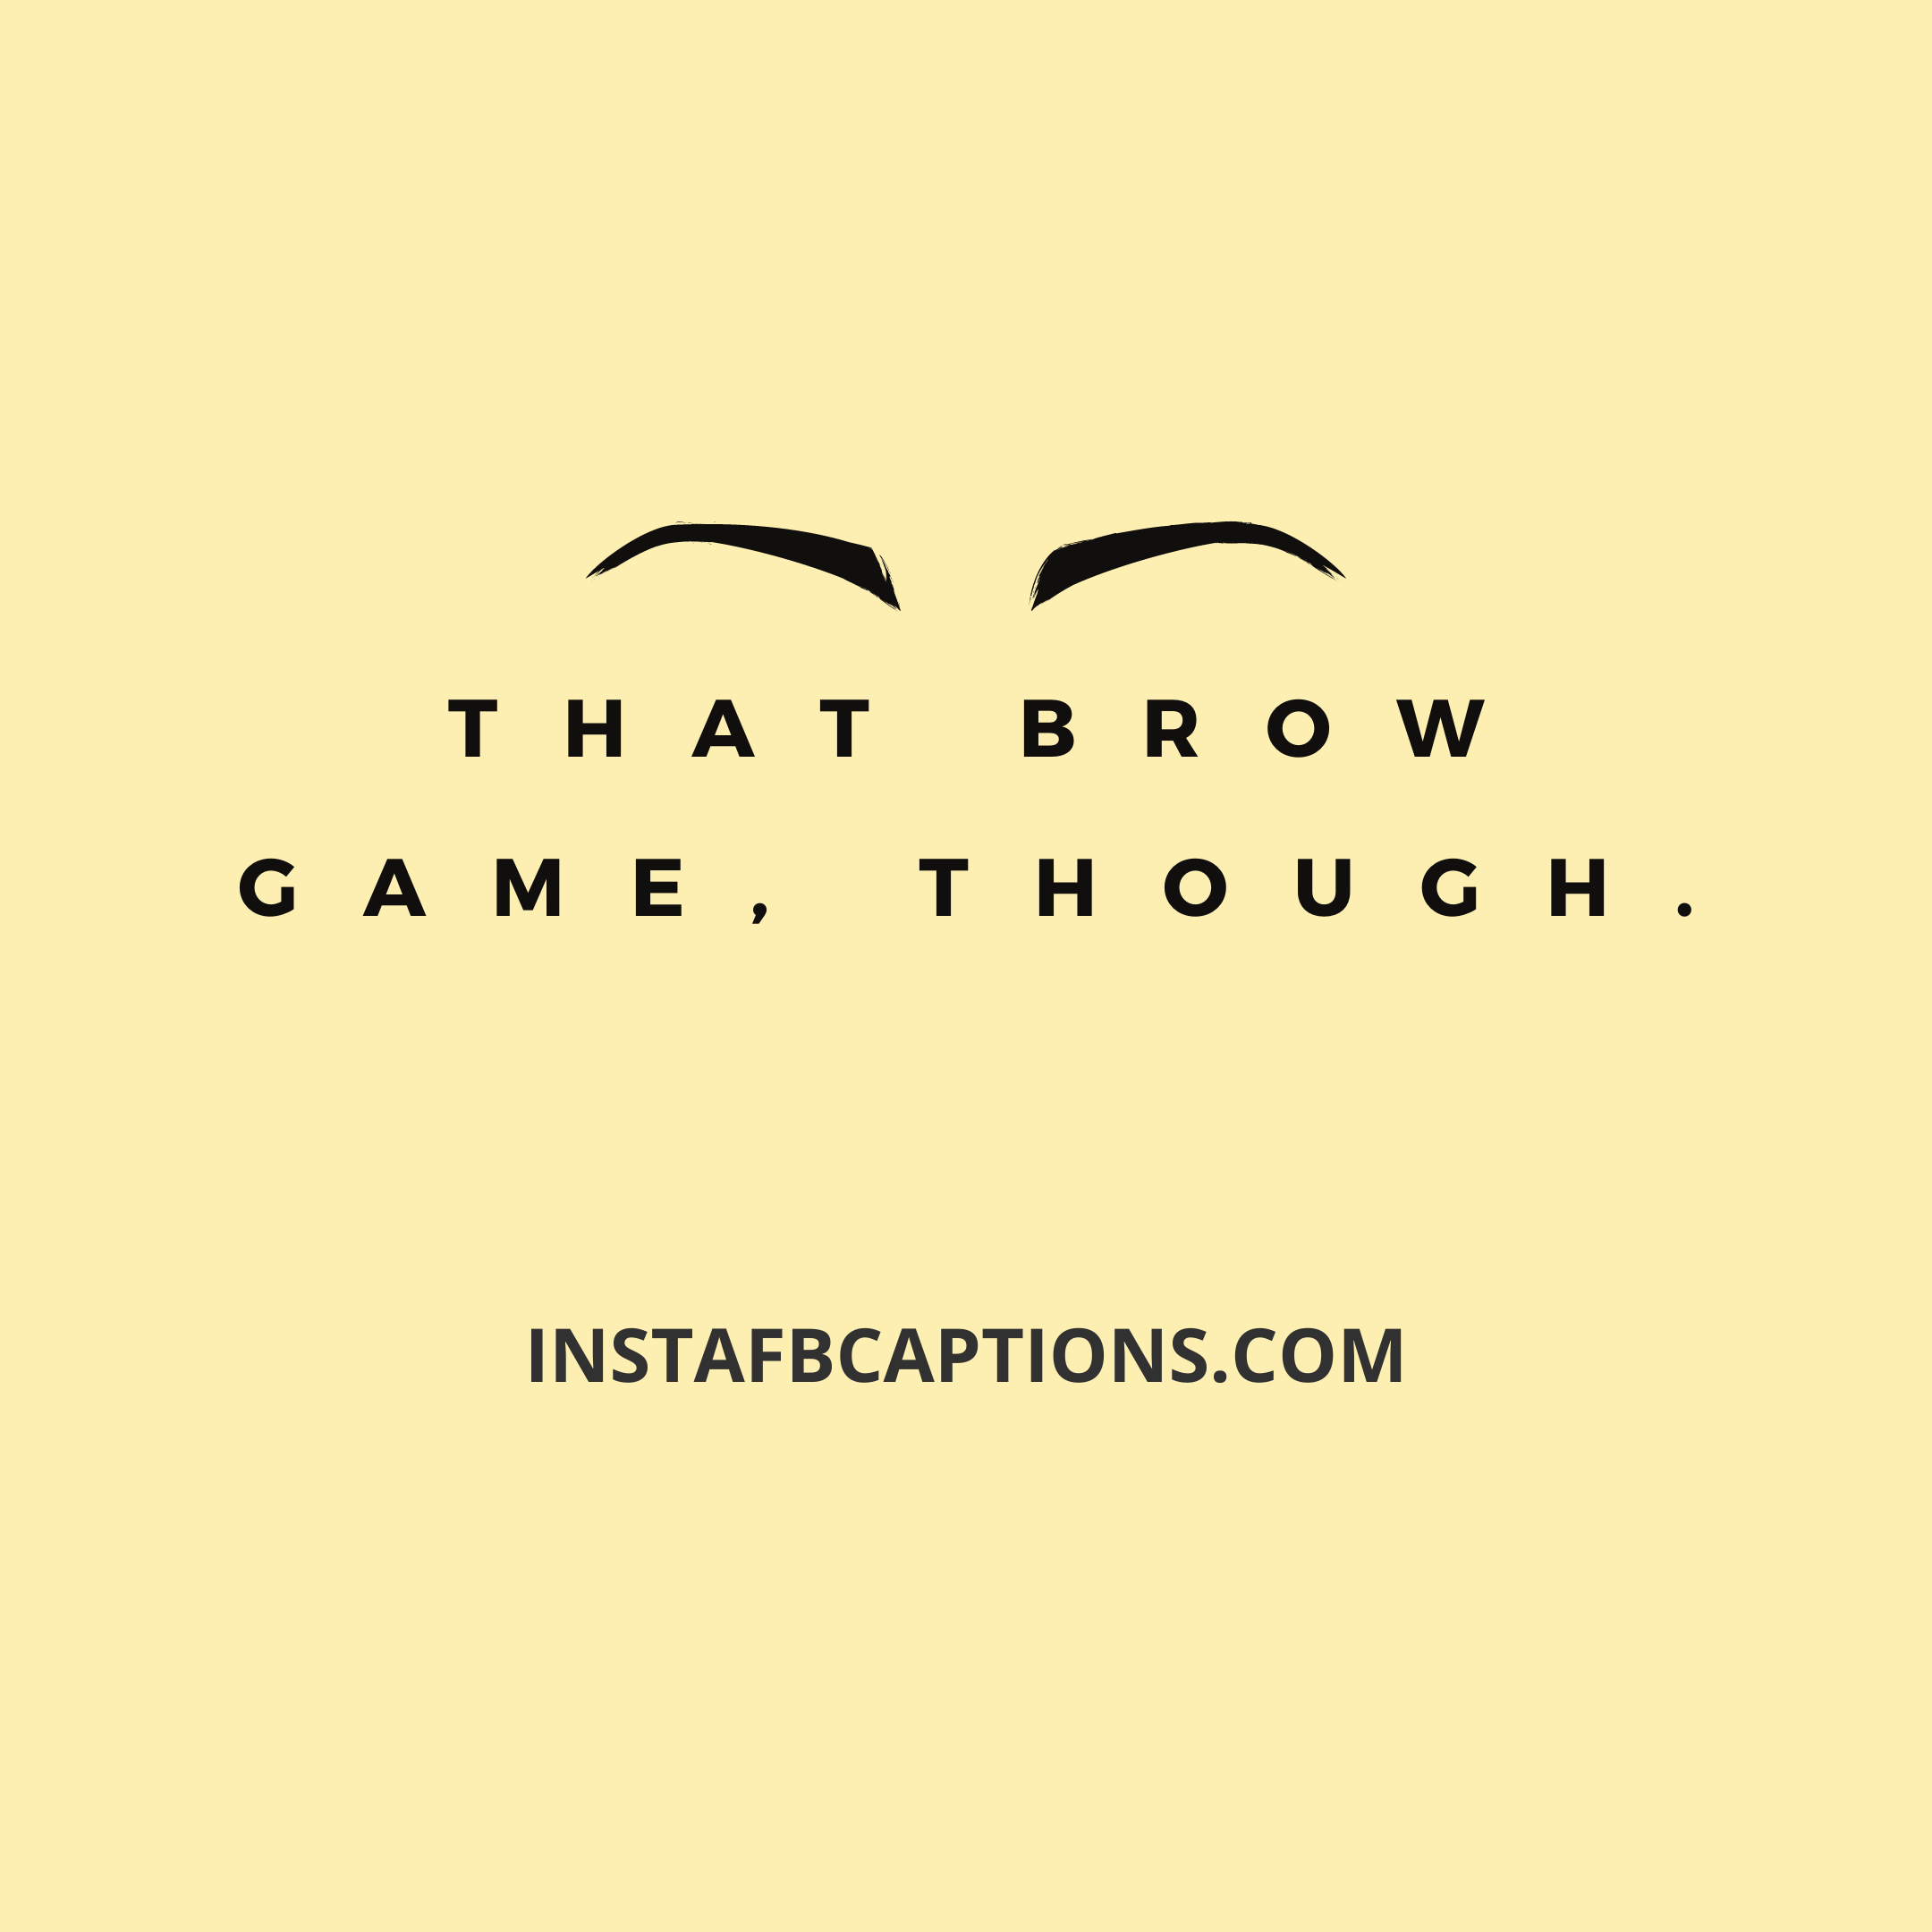 That Brow Game, Though  - That brow game though - 300+ Funny Comments For Best Friends | (Bestie Friend)